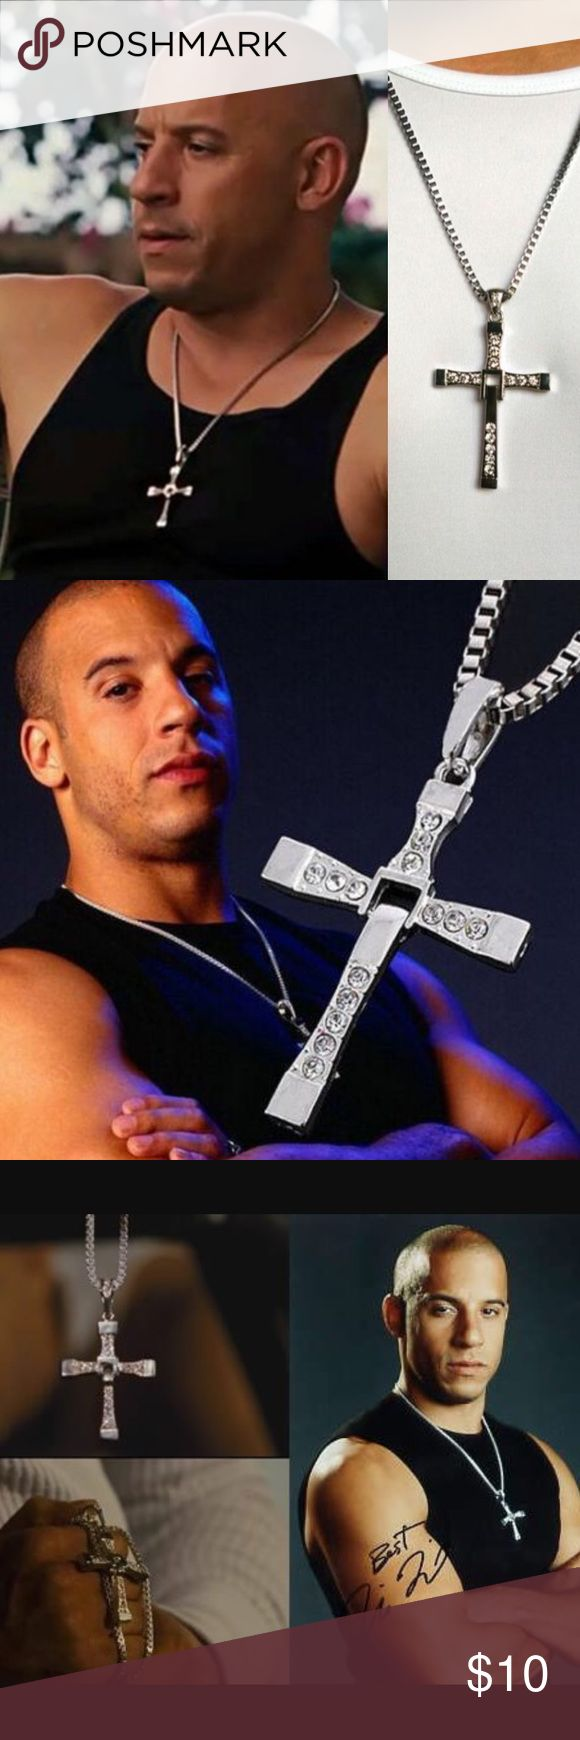 Crystal Cross Necklace Brand New ⭐️ NO TRADES ‼️  2-3 business day processing time ~~~~~~~~~~~~~~~~~~~~~~~~~~~   Vin diesel fast furious car movie silver men's jewelry Jewelry Necklaces